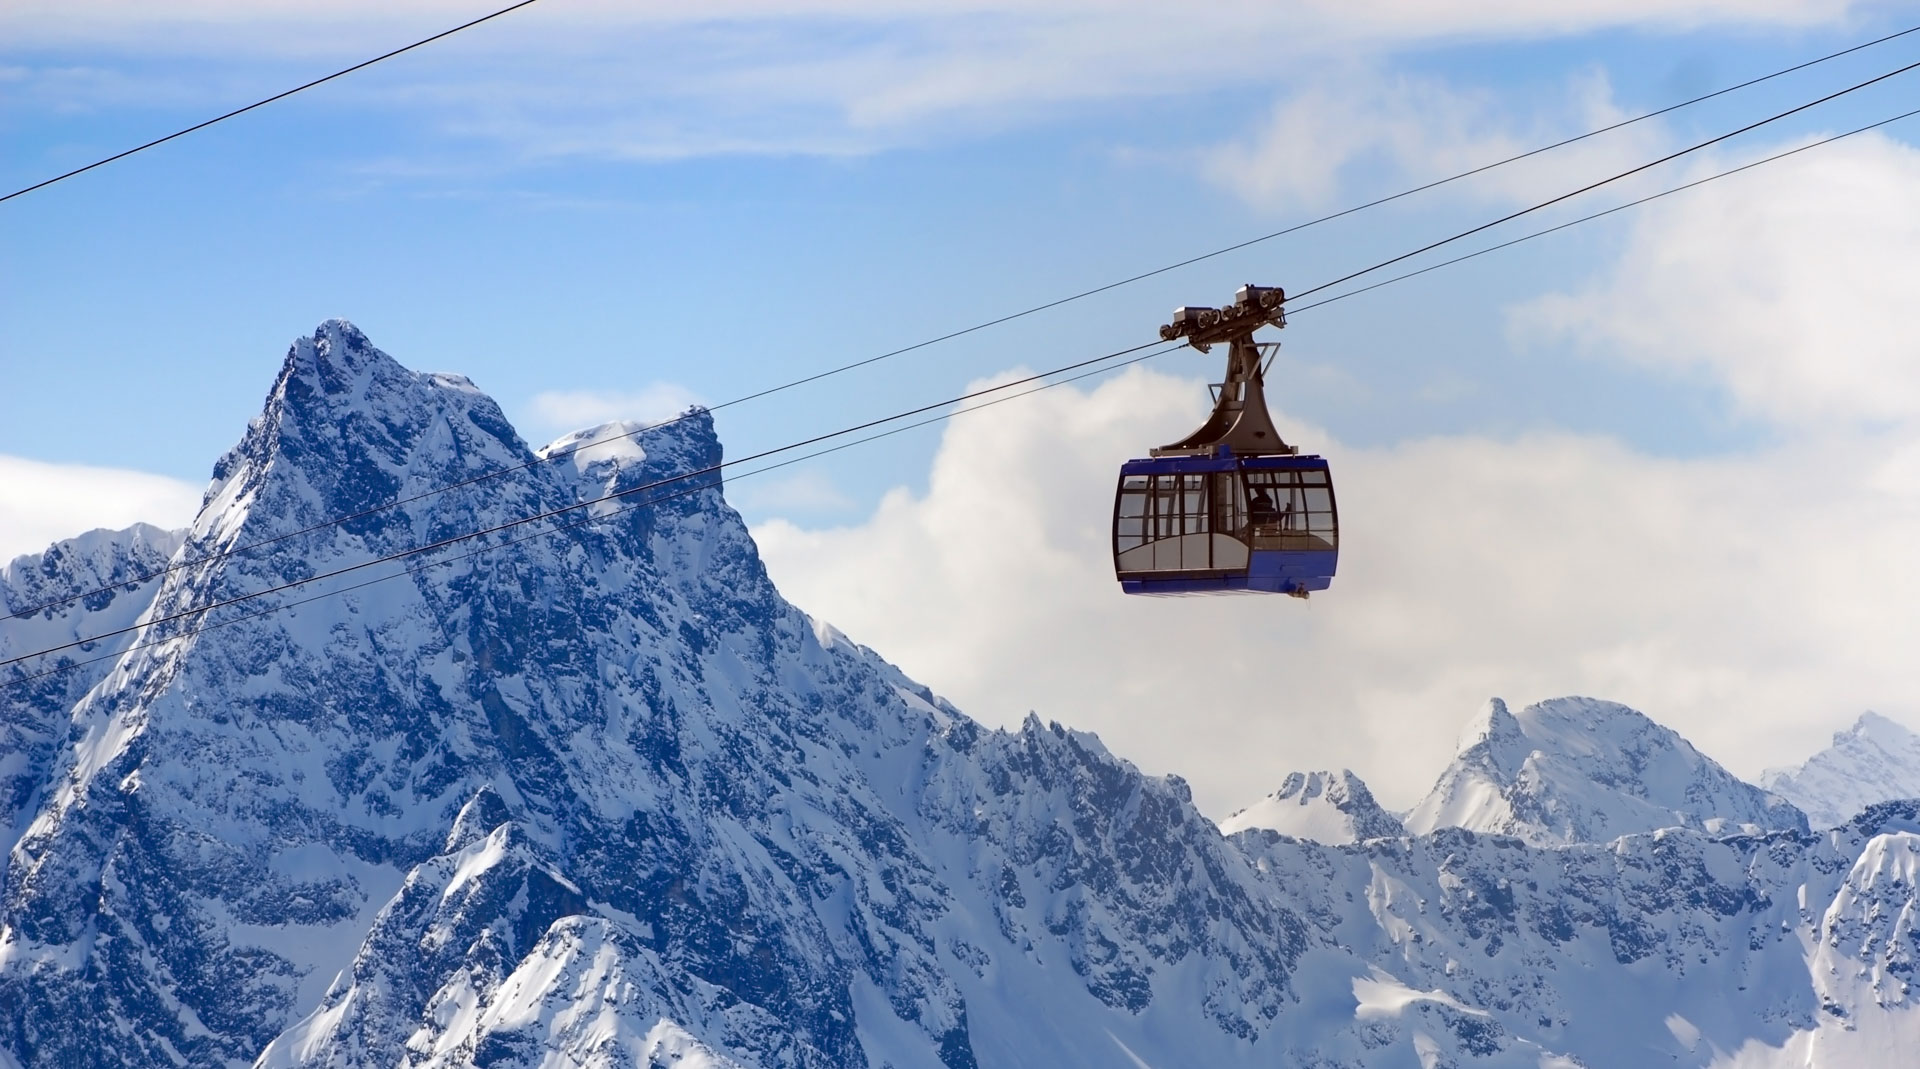 A blue cable car rises up in front of formidable mountain peaks in St Anton am Arlberg